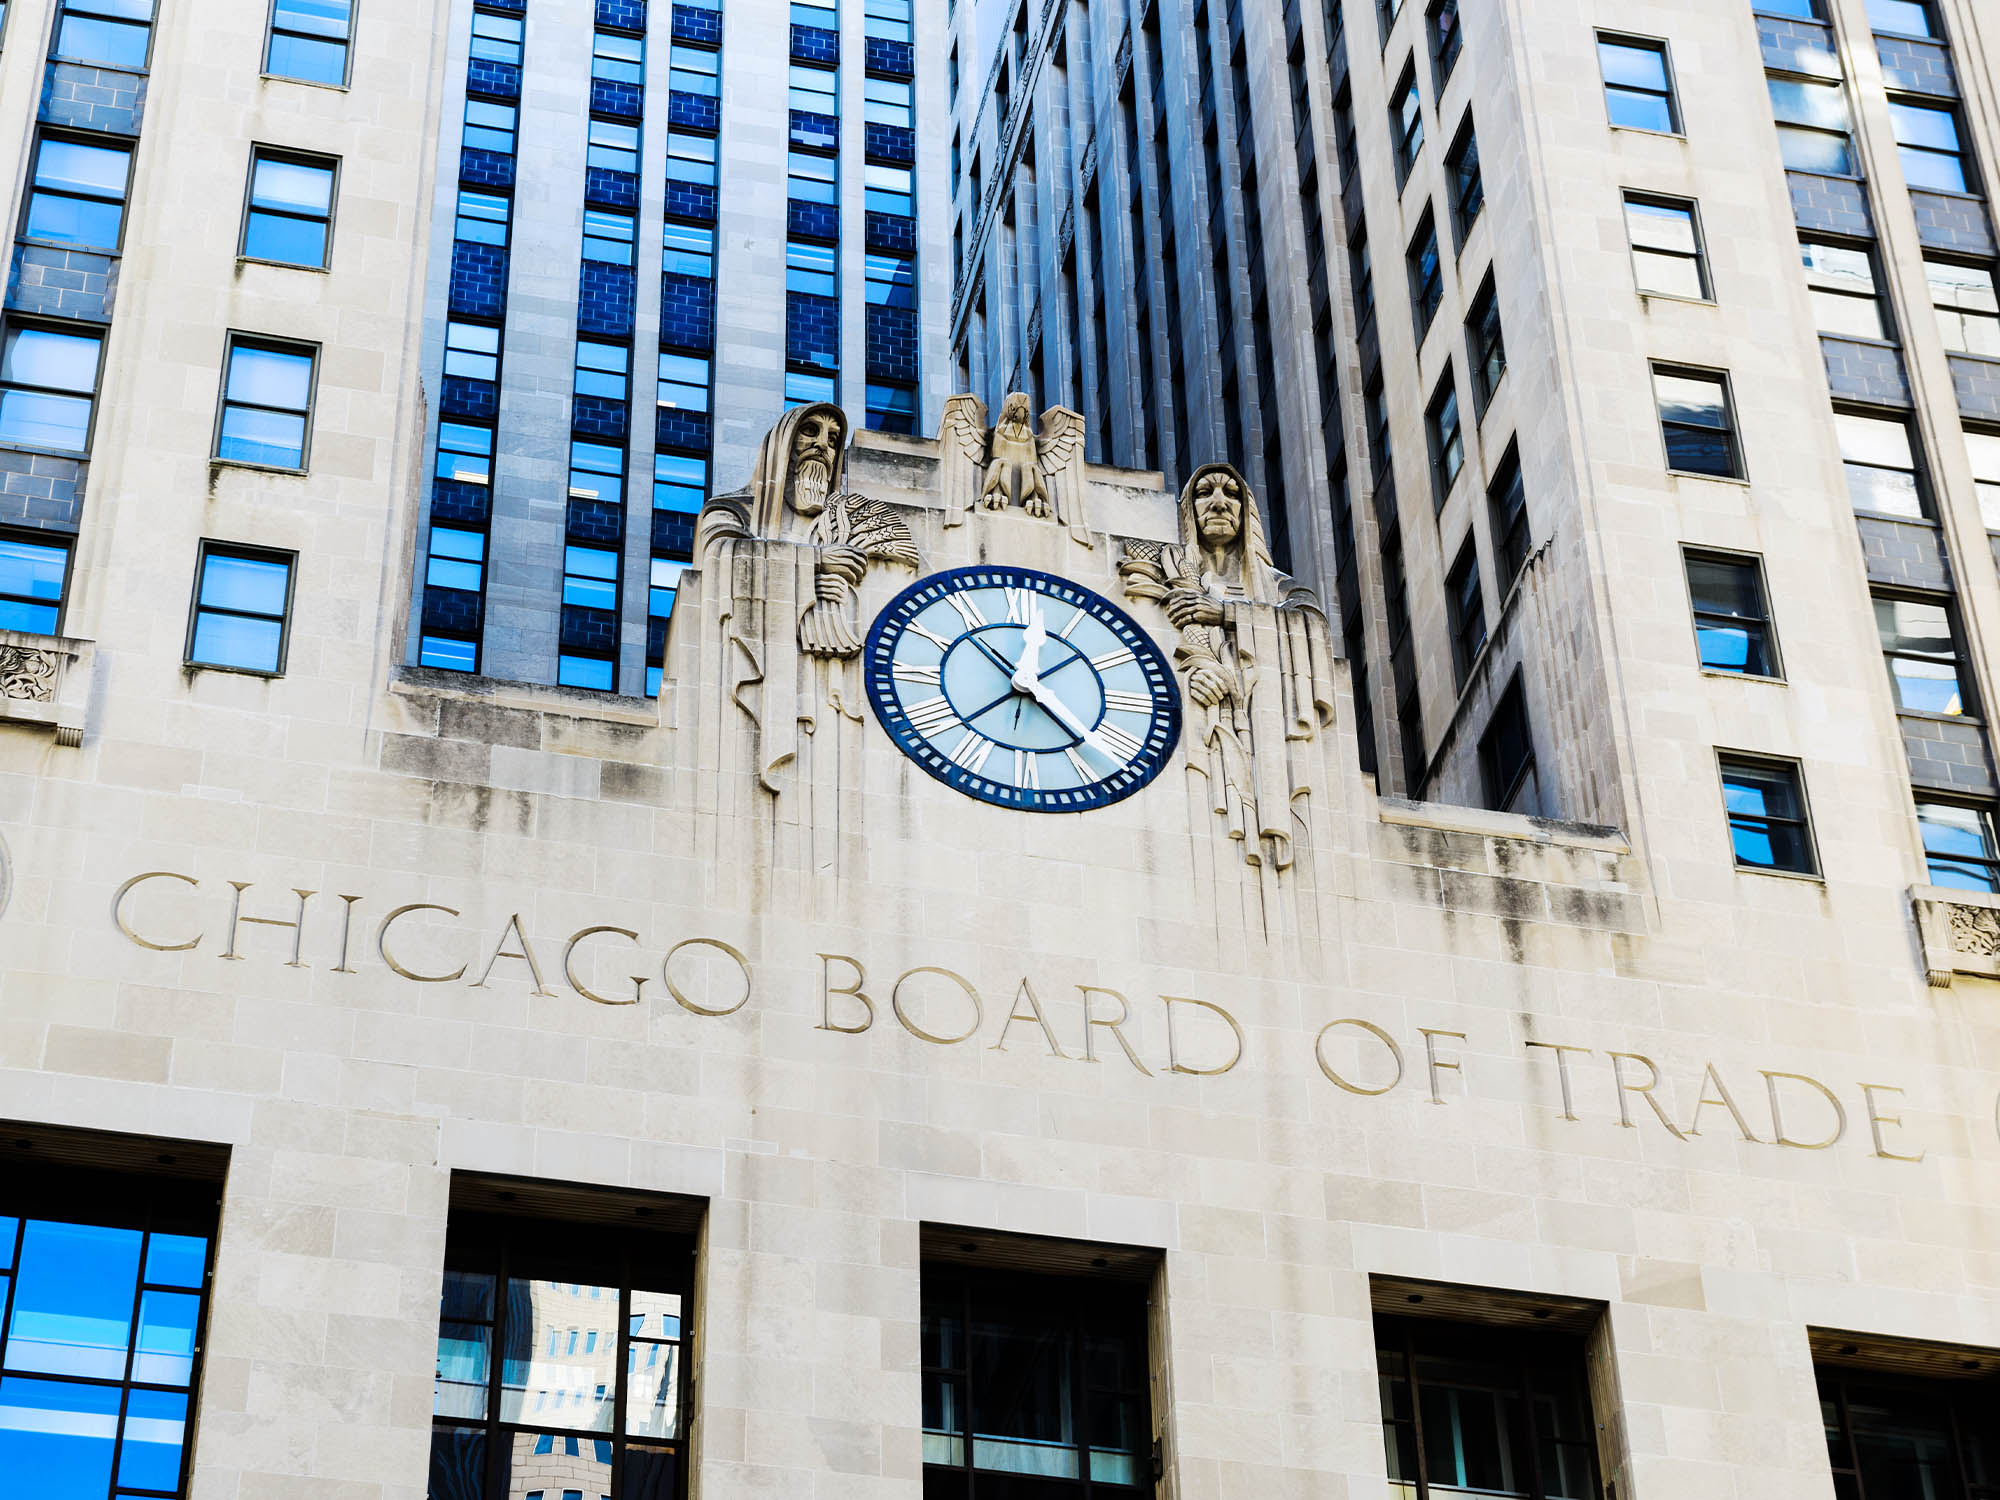 Investment Management Services - Chicago Board Of Trade Building